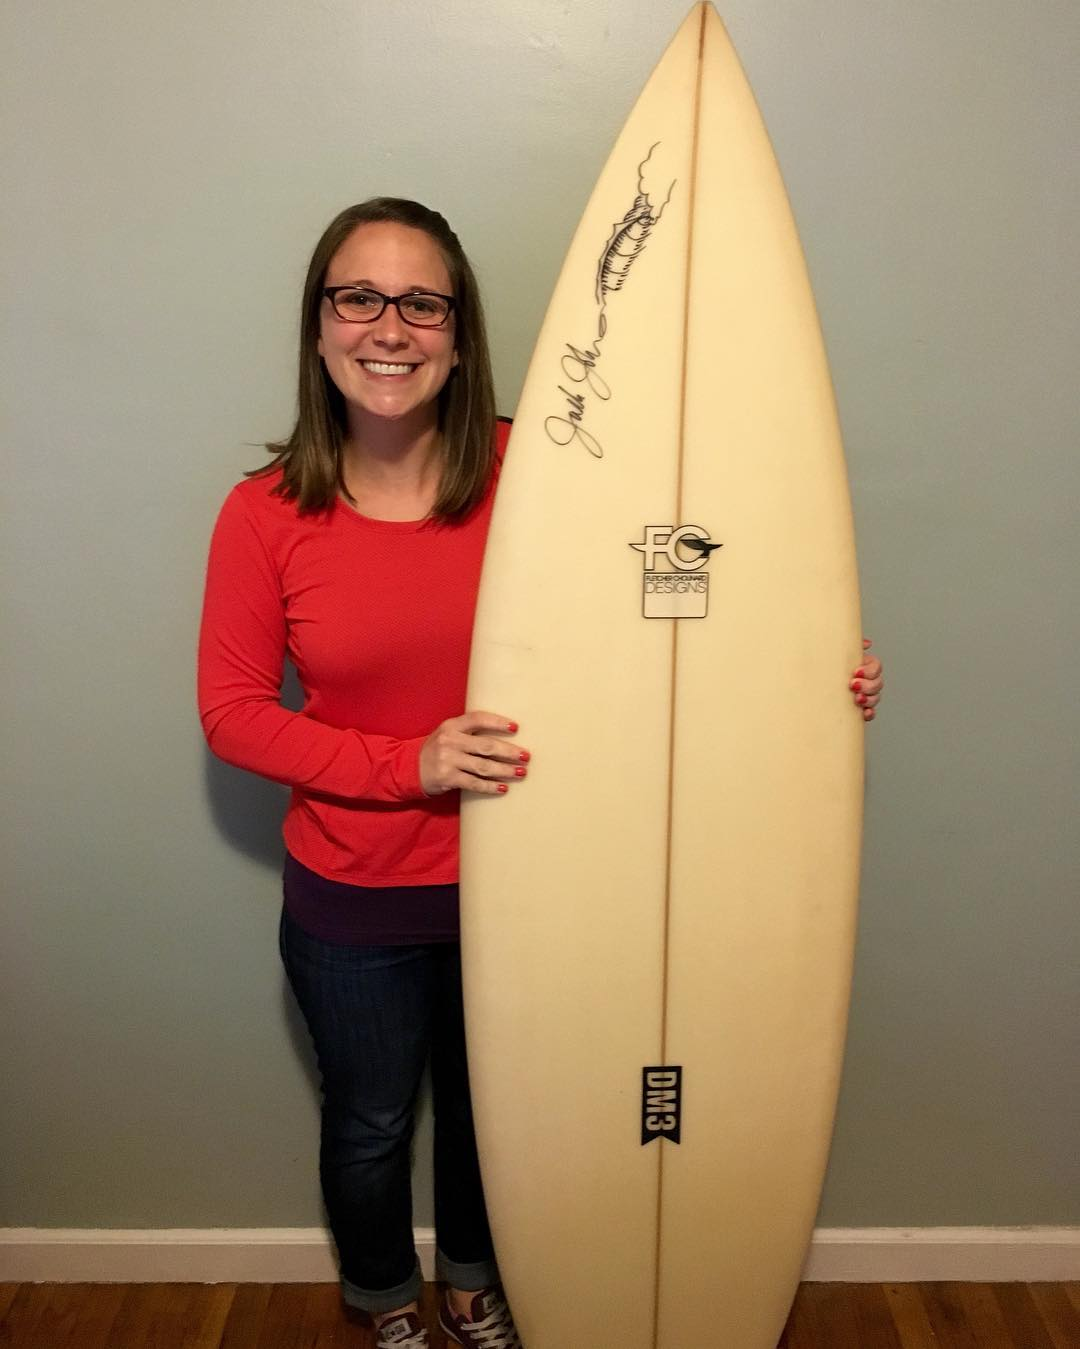 Congrats to Melissa Carlin of Portland, Oregon! Melissa was selected from our 2015 BLUE CREW supporters as the winner of a @fcdsurfboards signed by musician and @1percentftp Ambassador @jackjohnson!